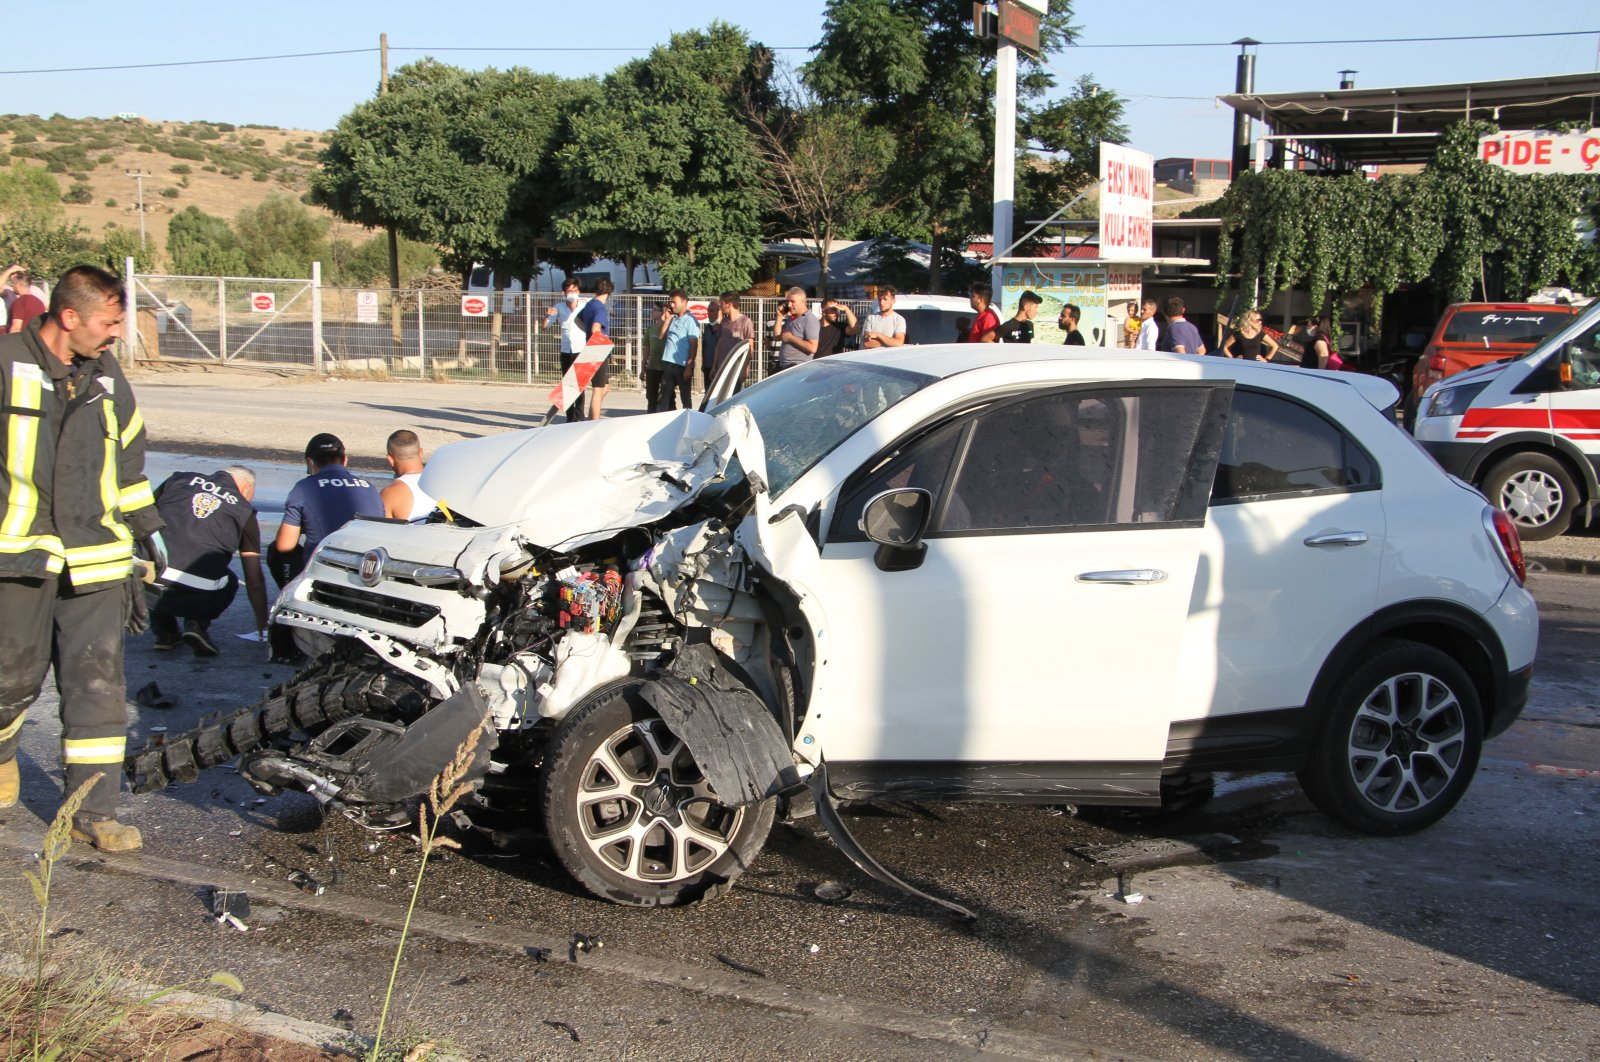 Wreckage of a car after an accident which injured five people, in Manisa, western Turkey, Aug. 14, 2021. (AA Photo)